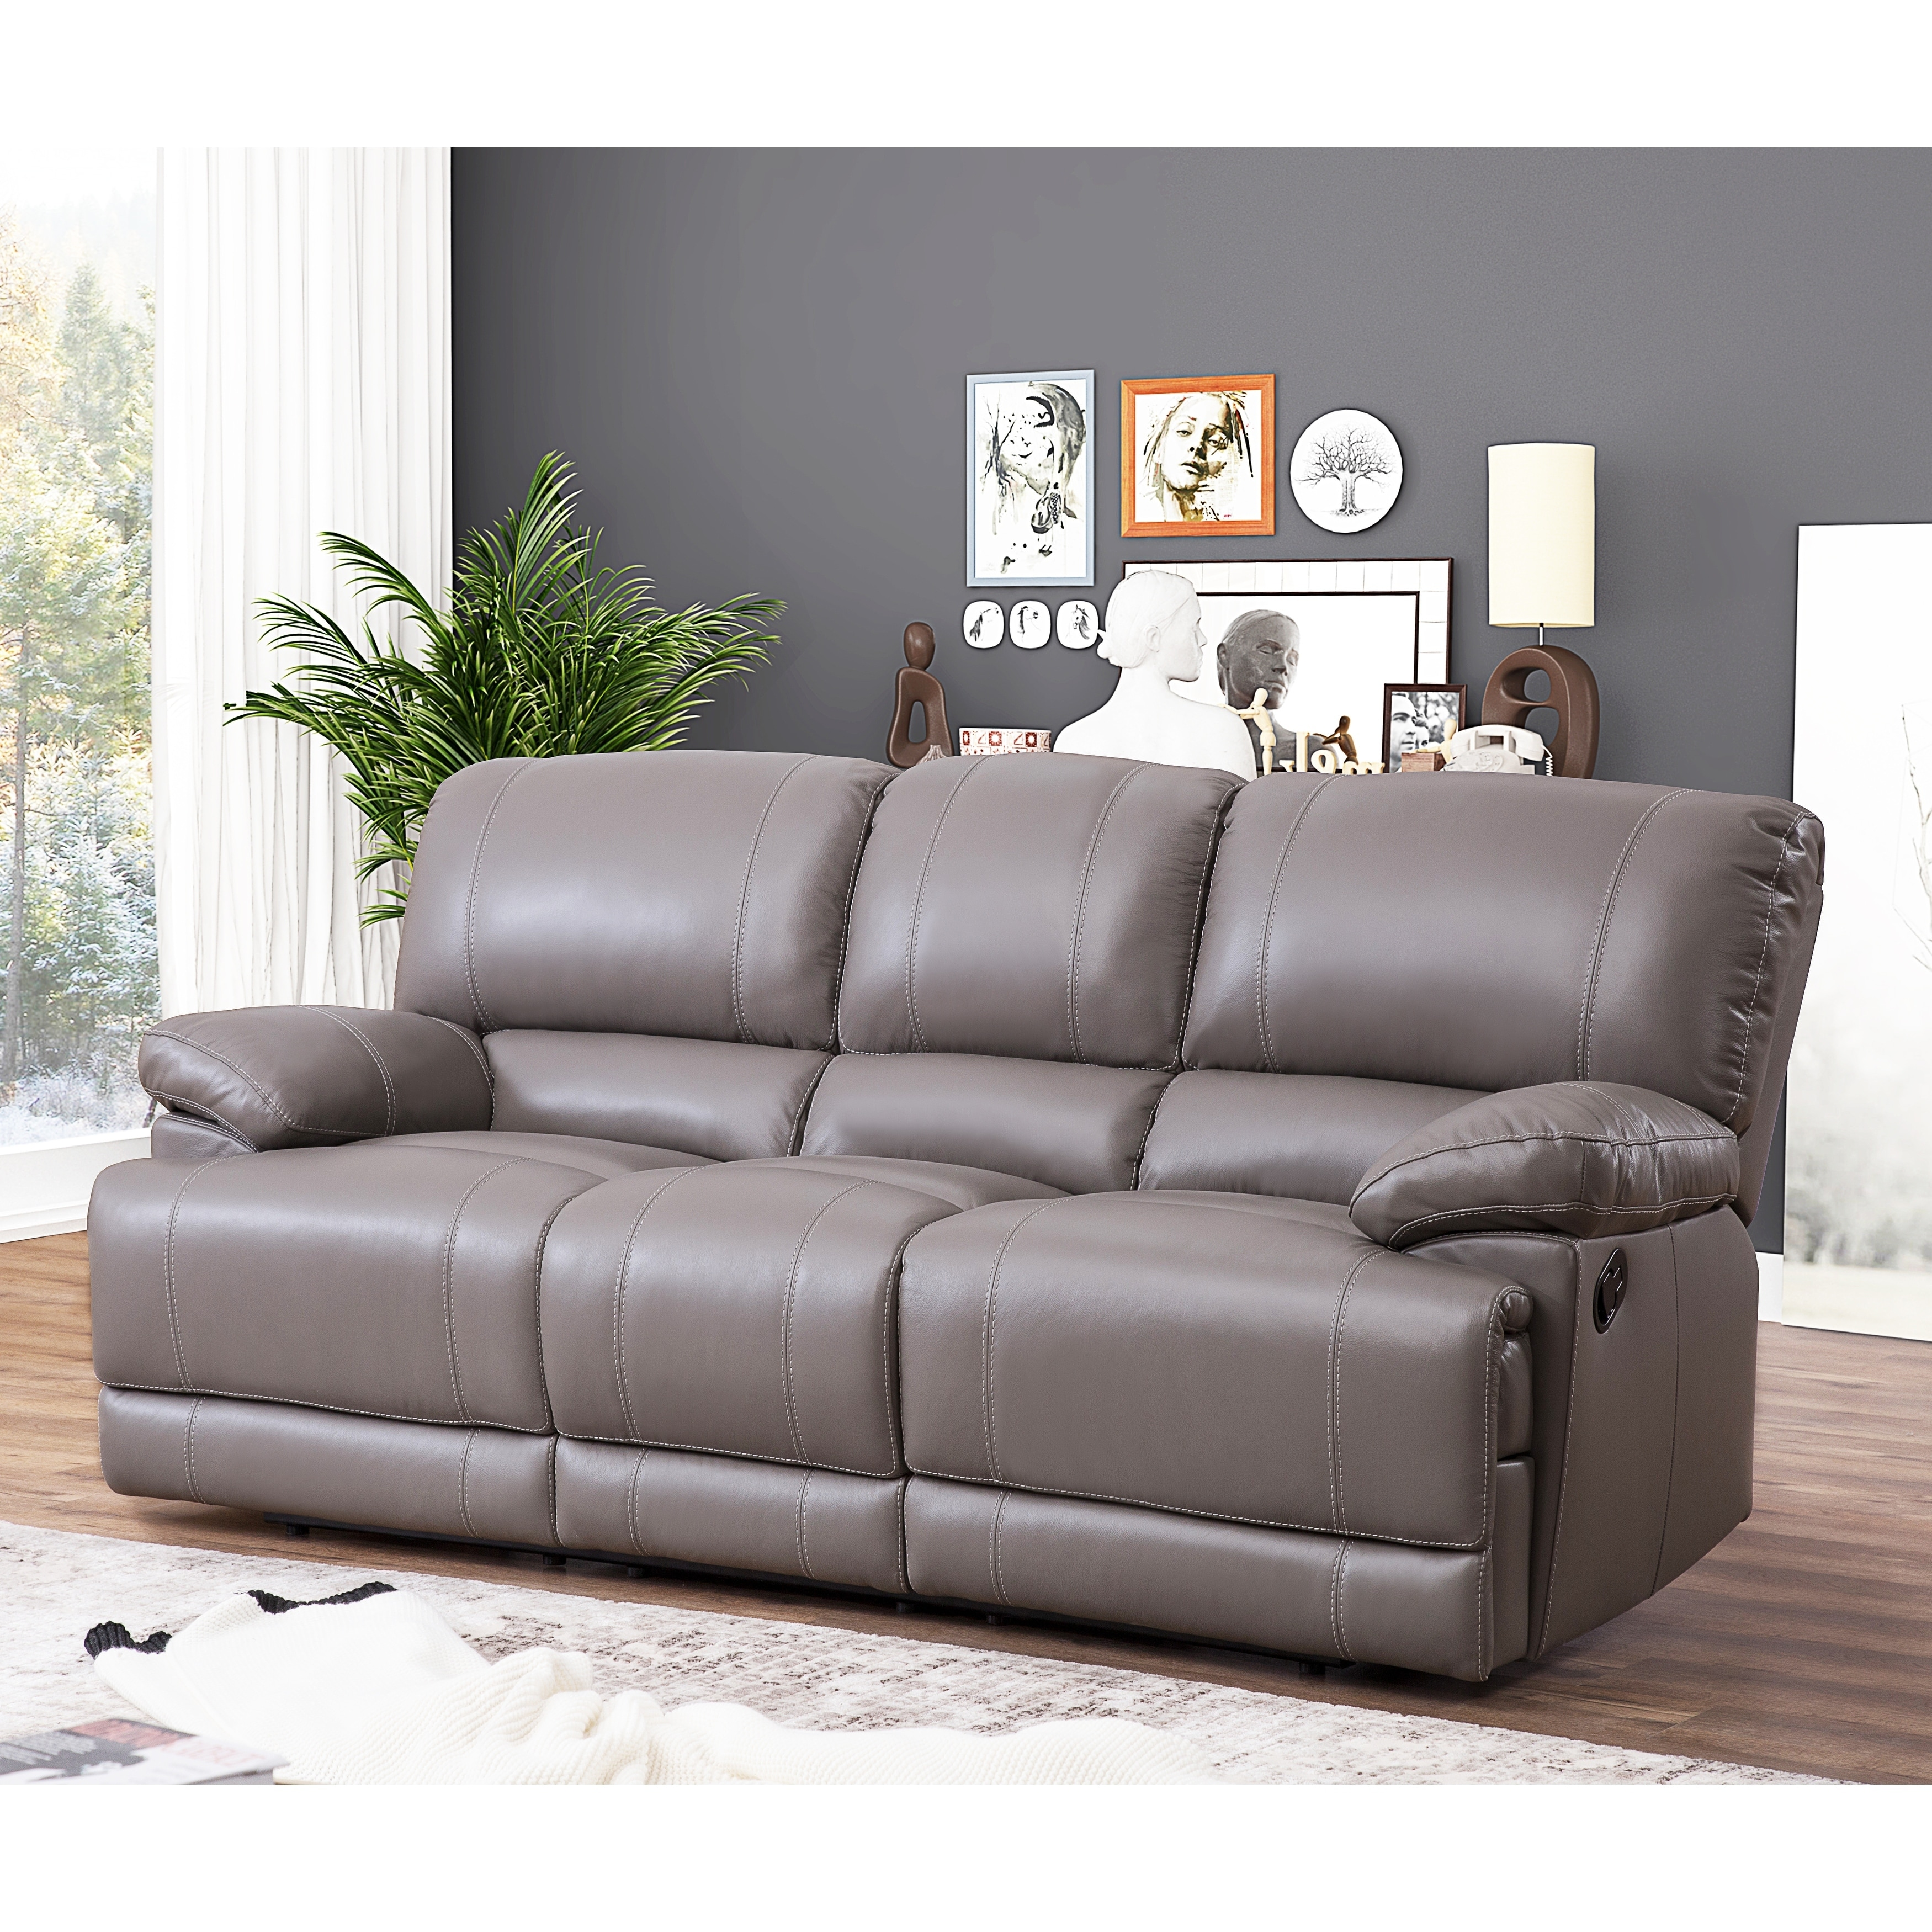 Abbyson Sk B1610 Gry 1 Stanford Leather Power Recliner